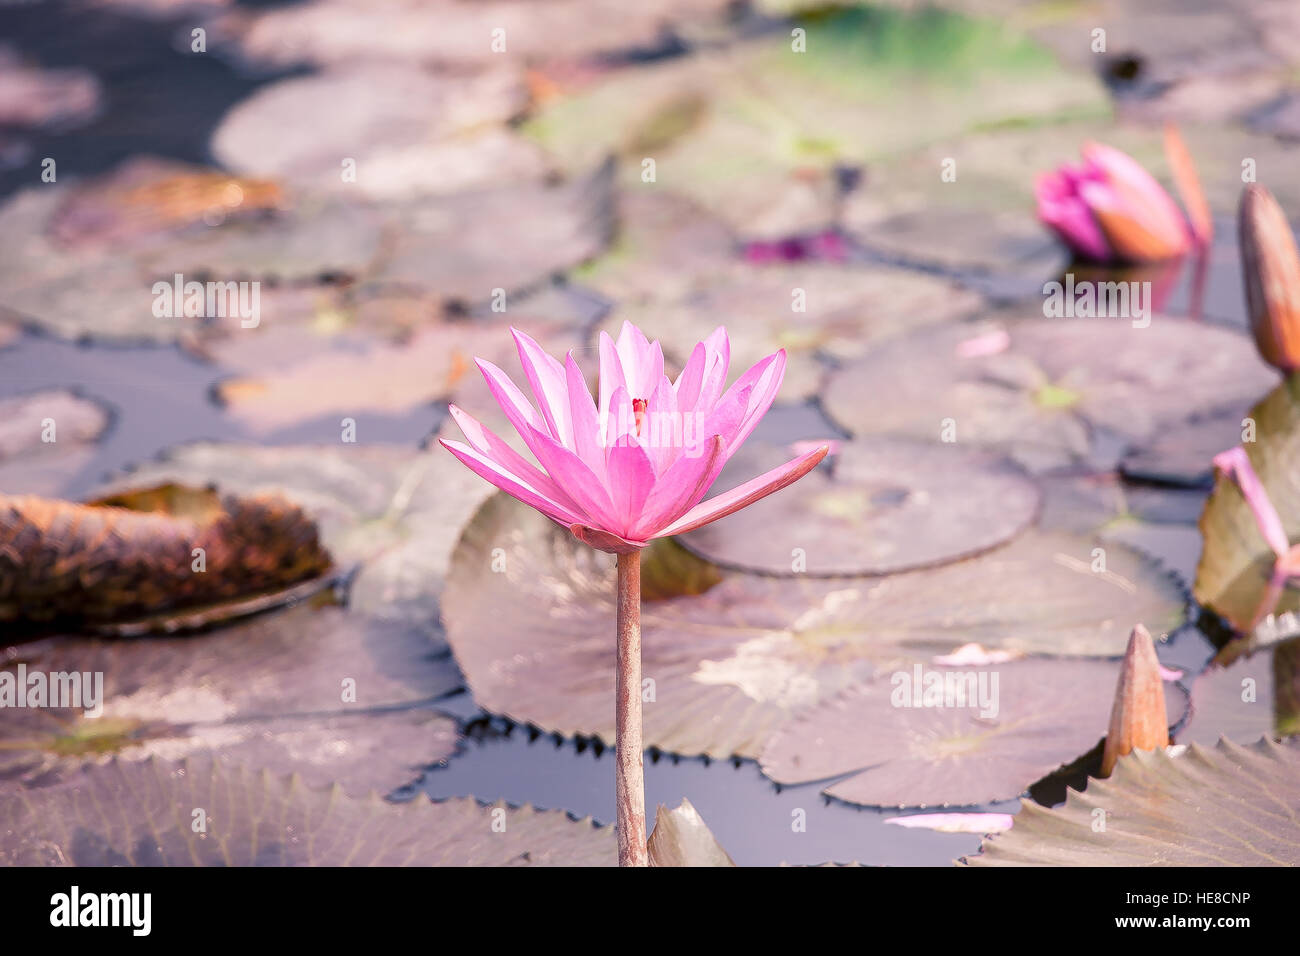 Lotus Blossom Flower At Hanoi Vietnam Stock Photo 129263394 Alamy